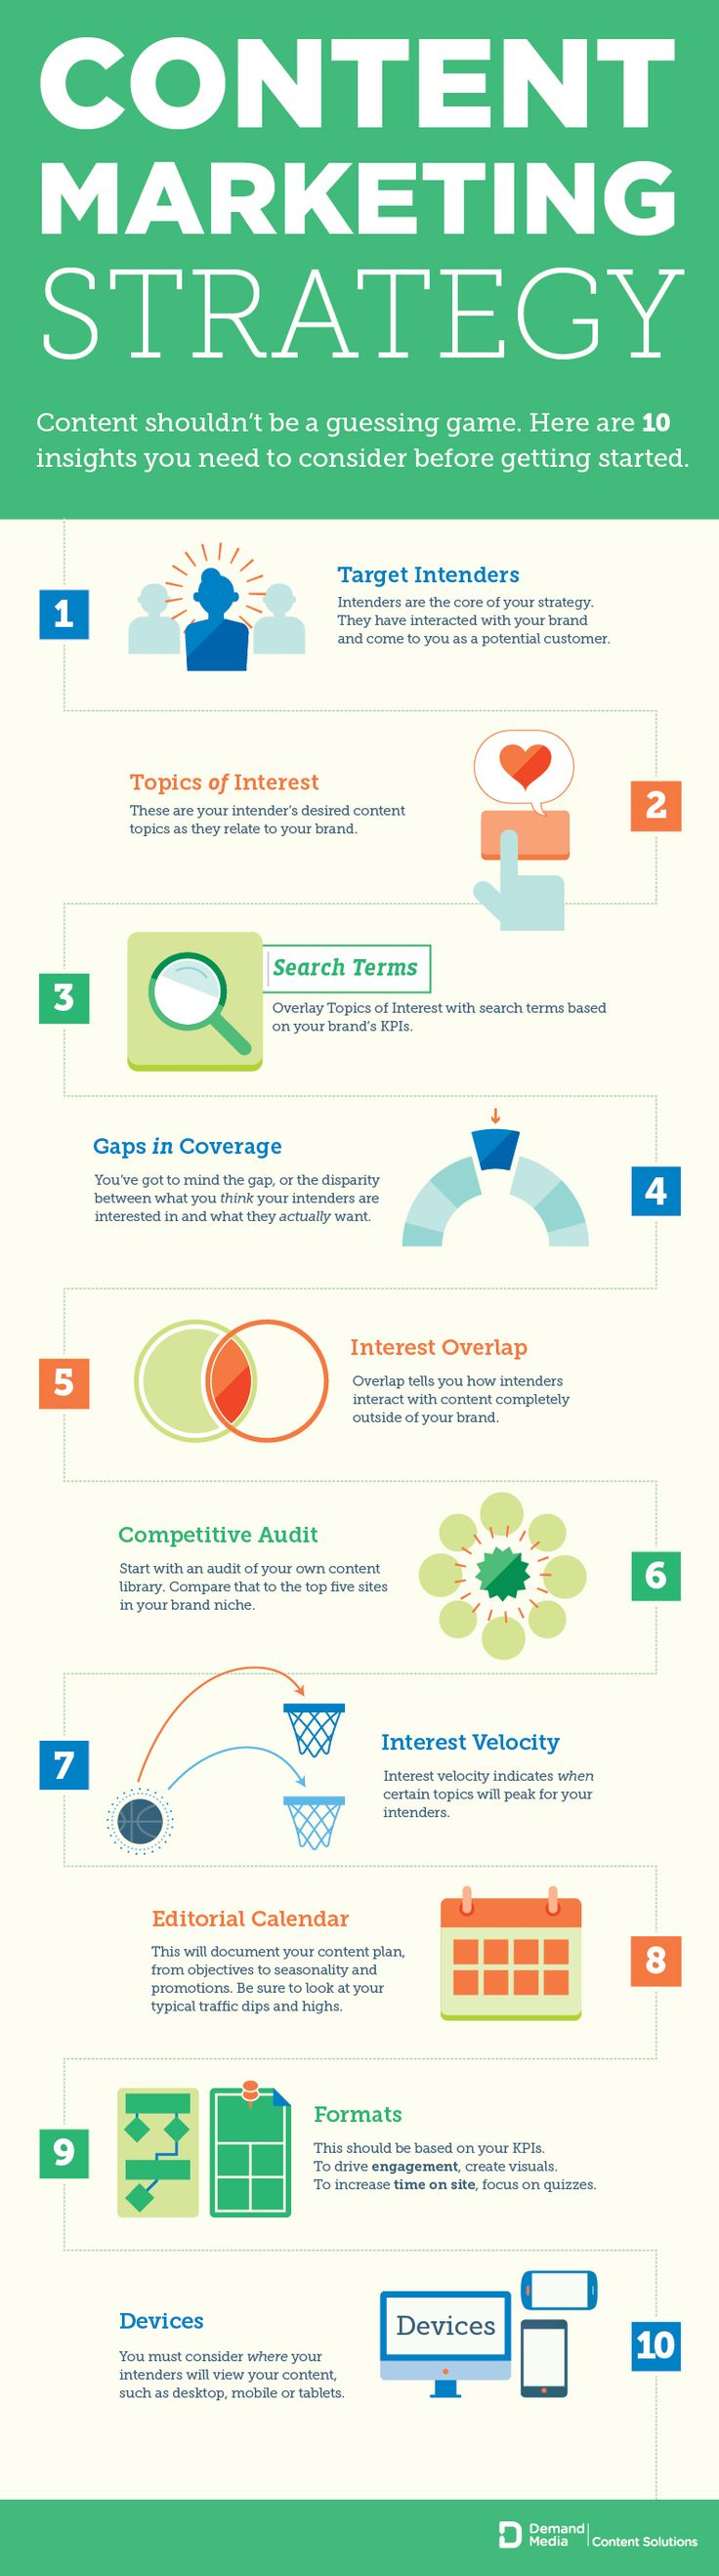 36 best Content Marketing Tips images on Pinterest